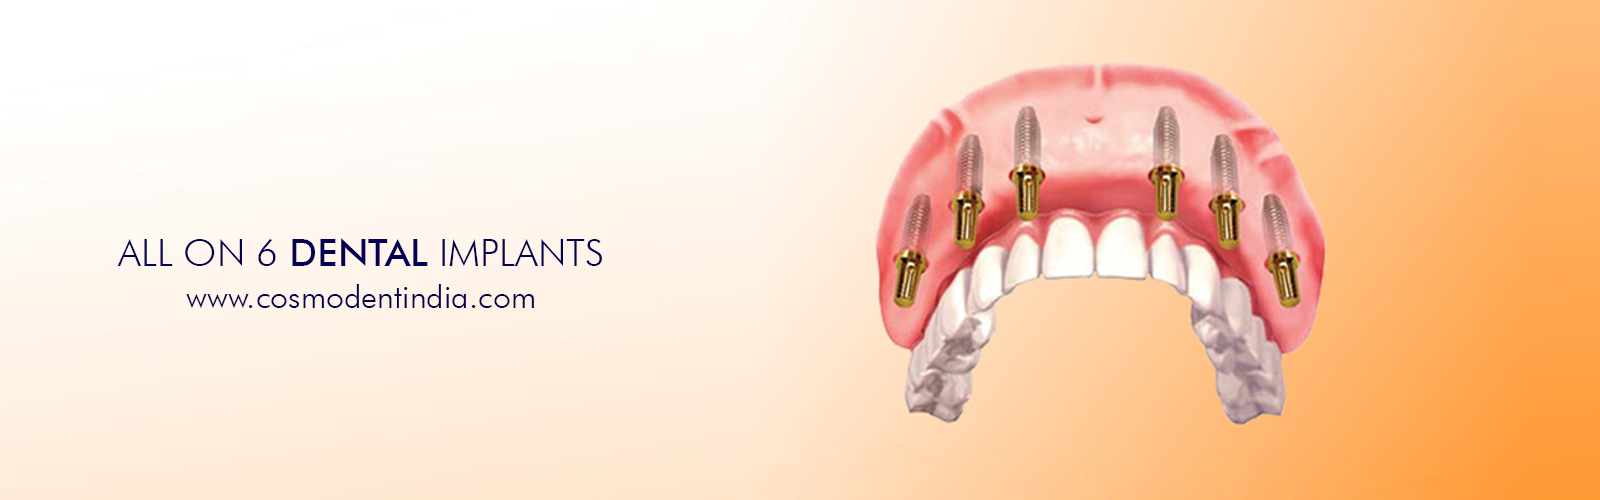 all-on-6-dental-implants-india